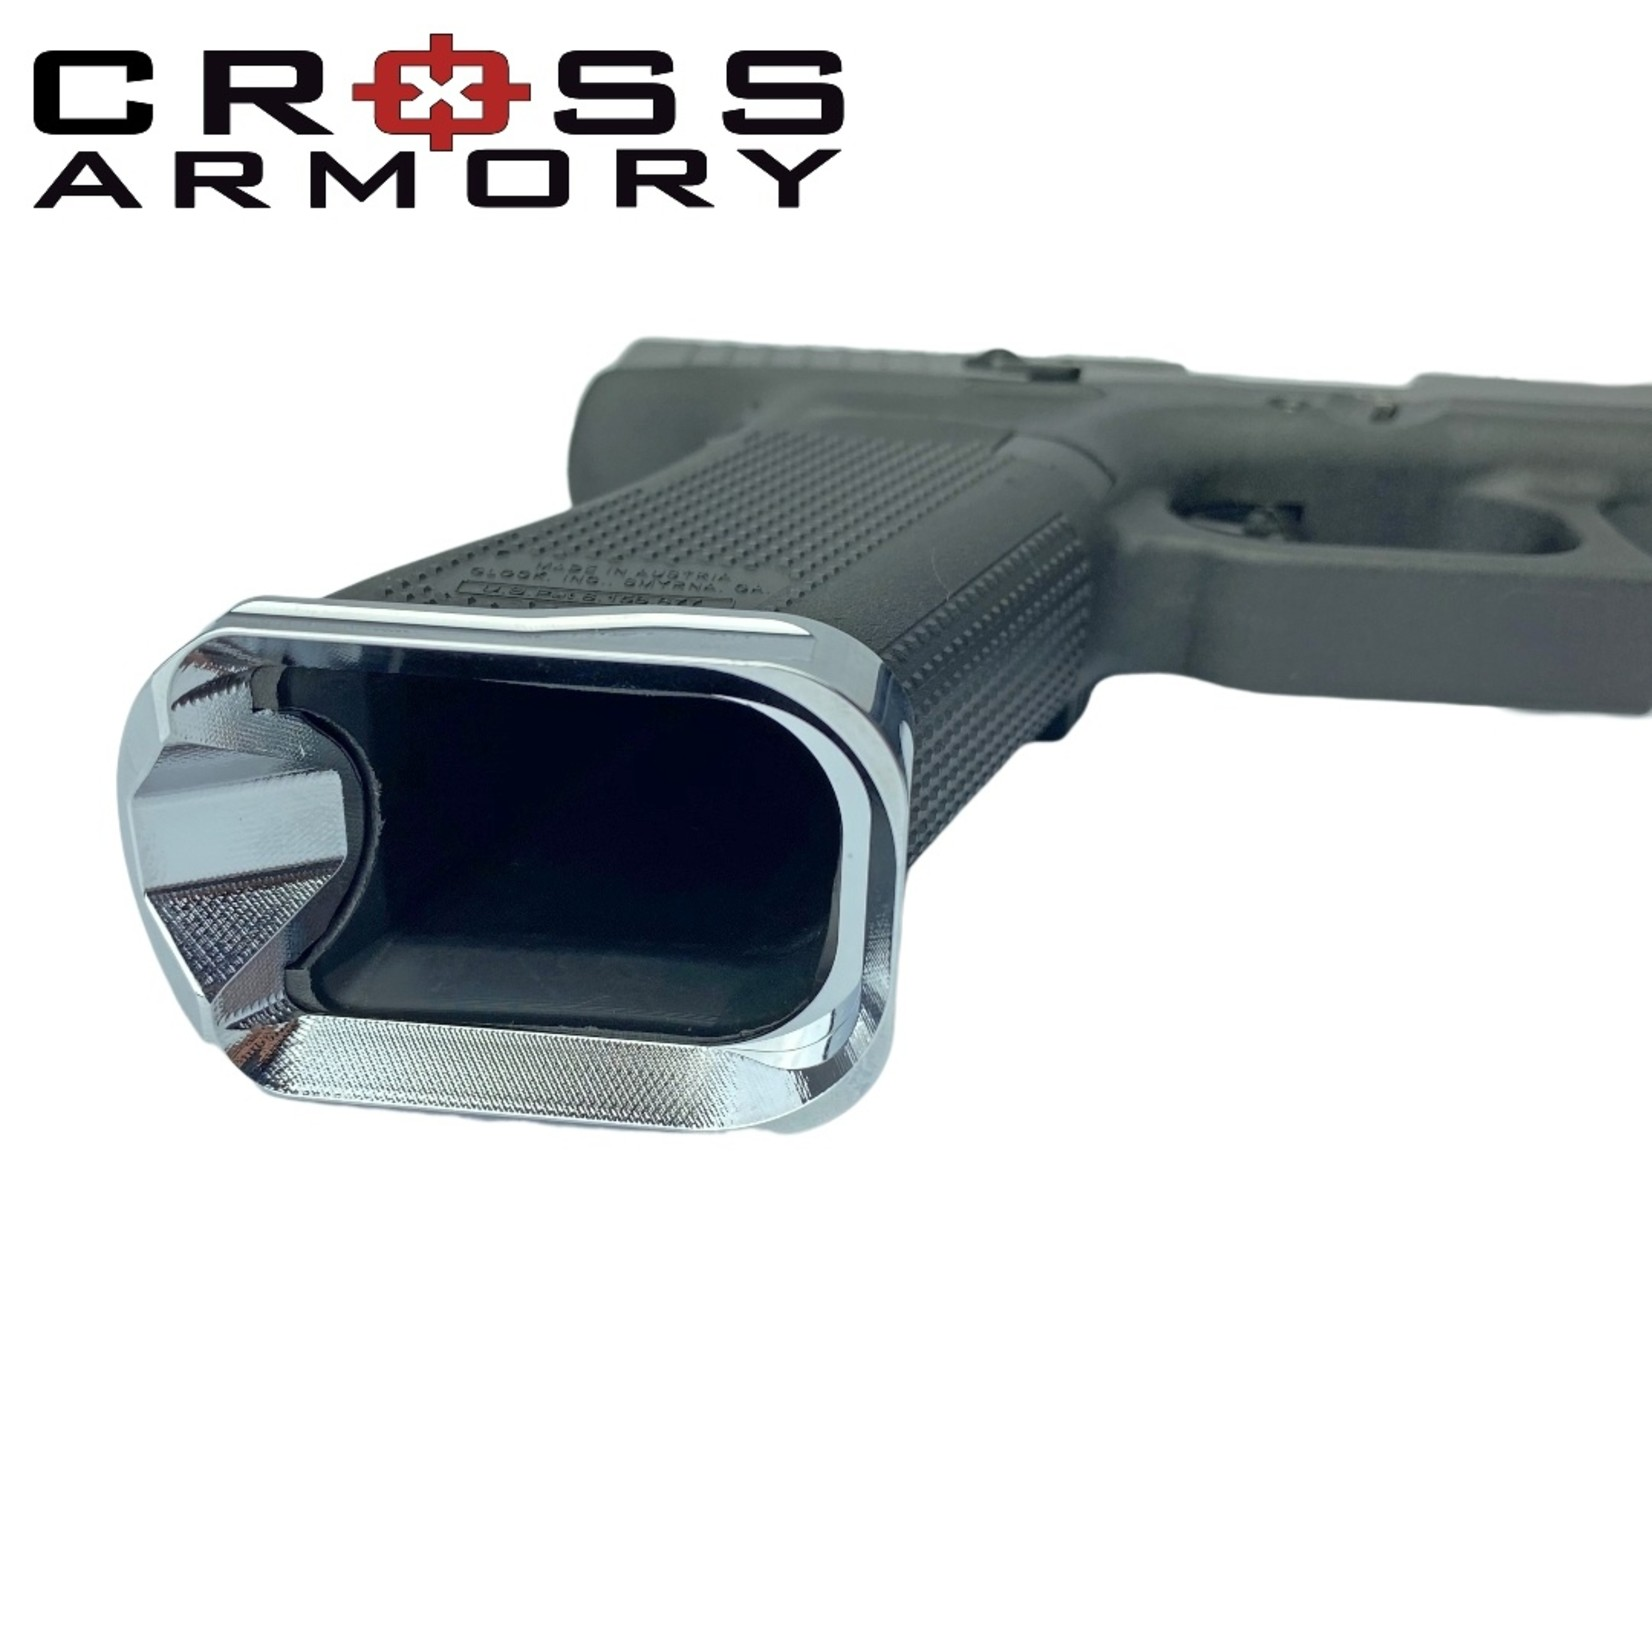 Cross Armory FLARED MAGWELL for Glock Gen 5 – SILVER by Cross Armory